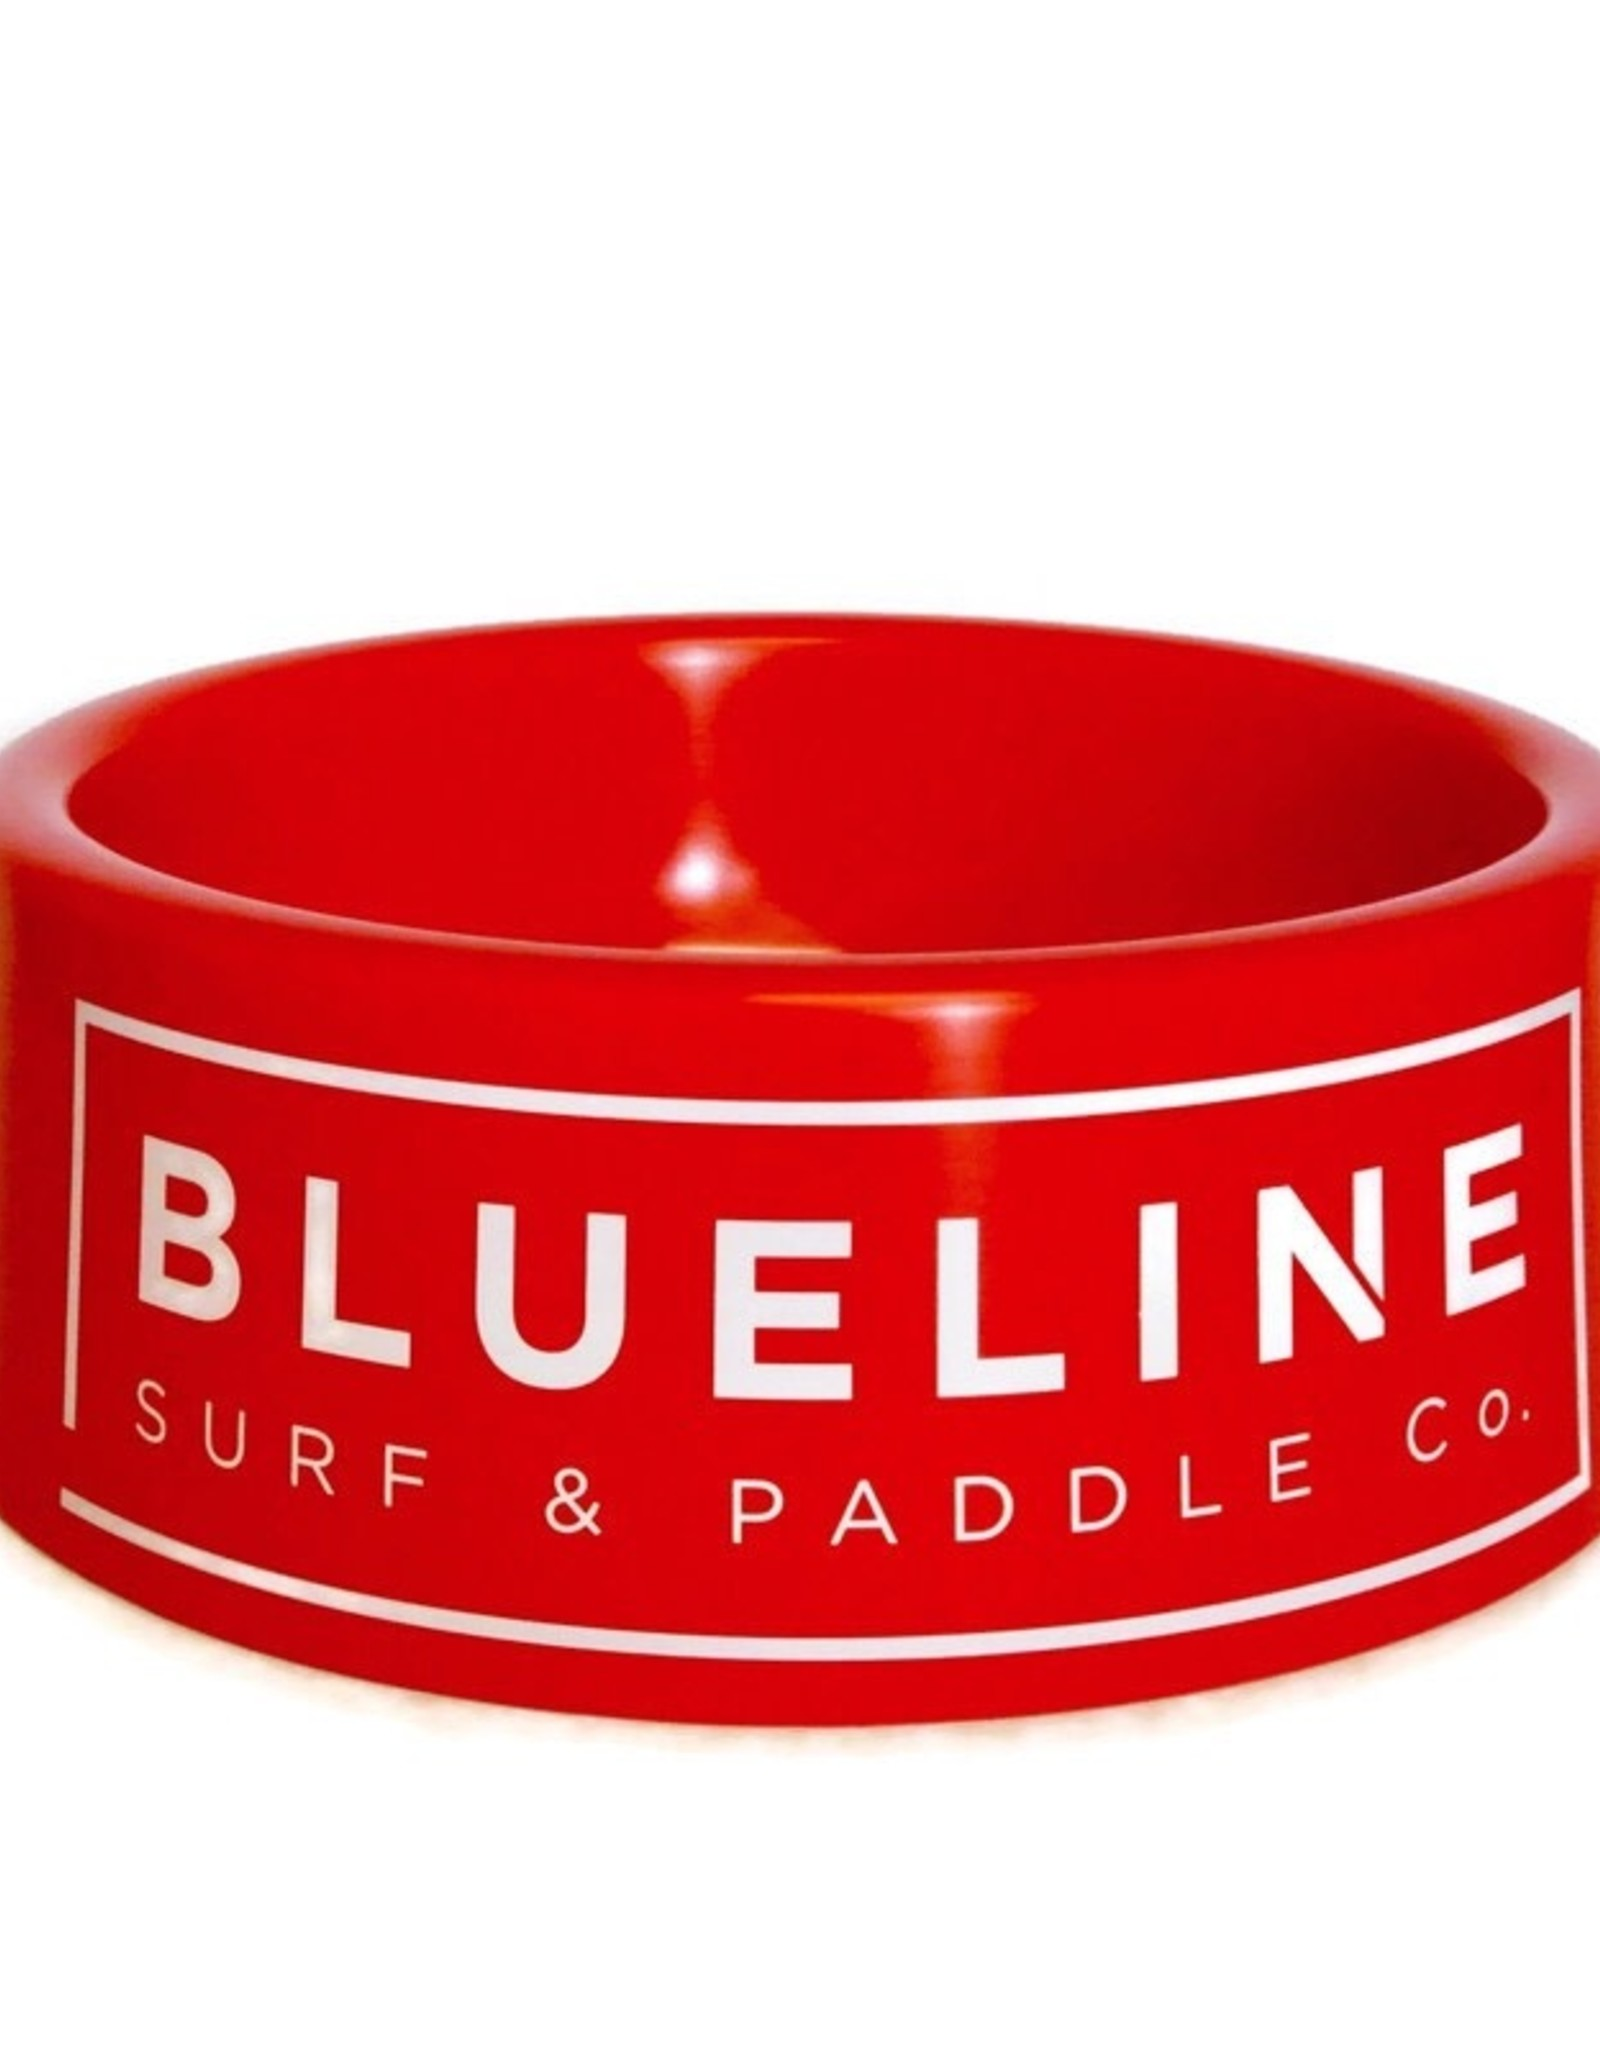 Blueline Surf + Paddle Co. Blueline Dog Bowl Red